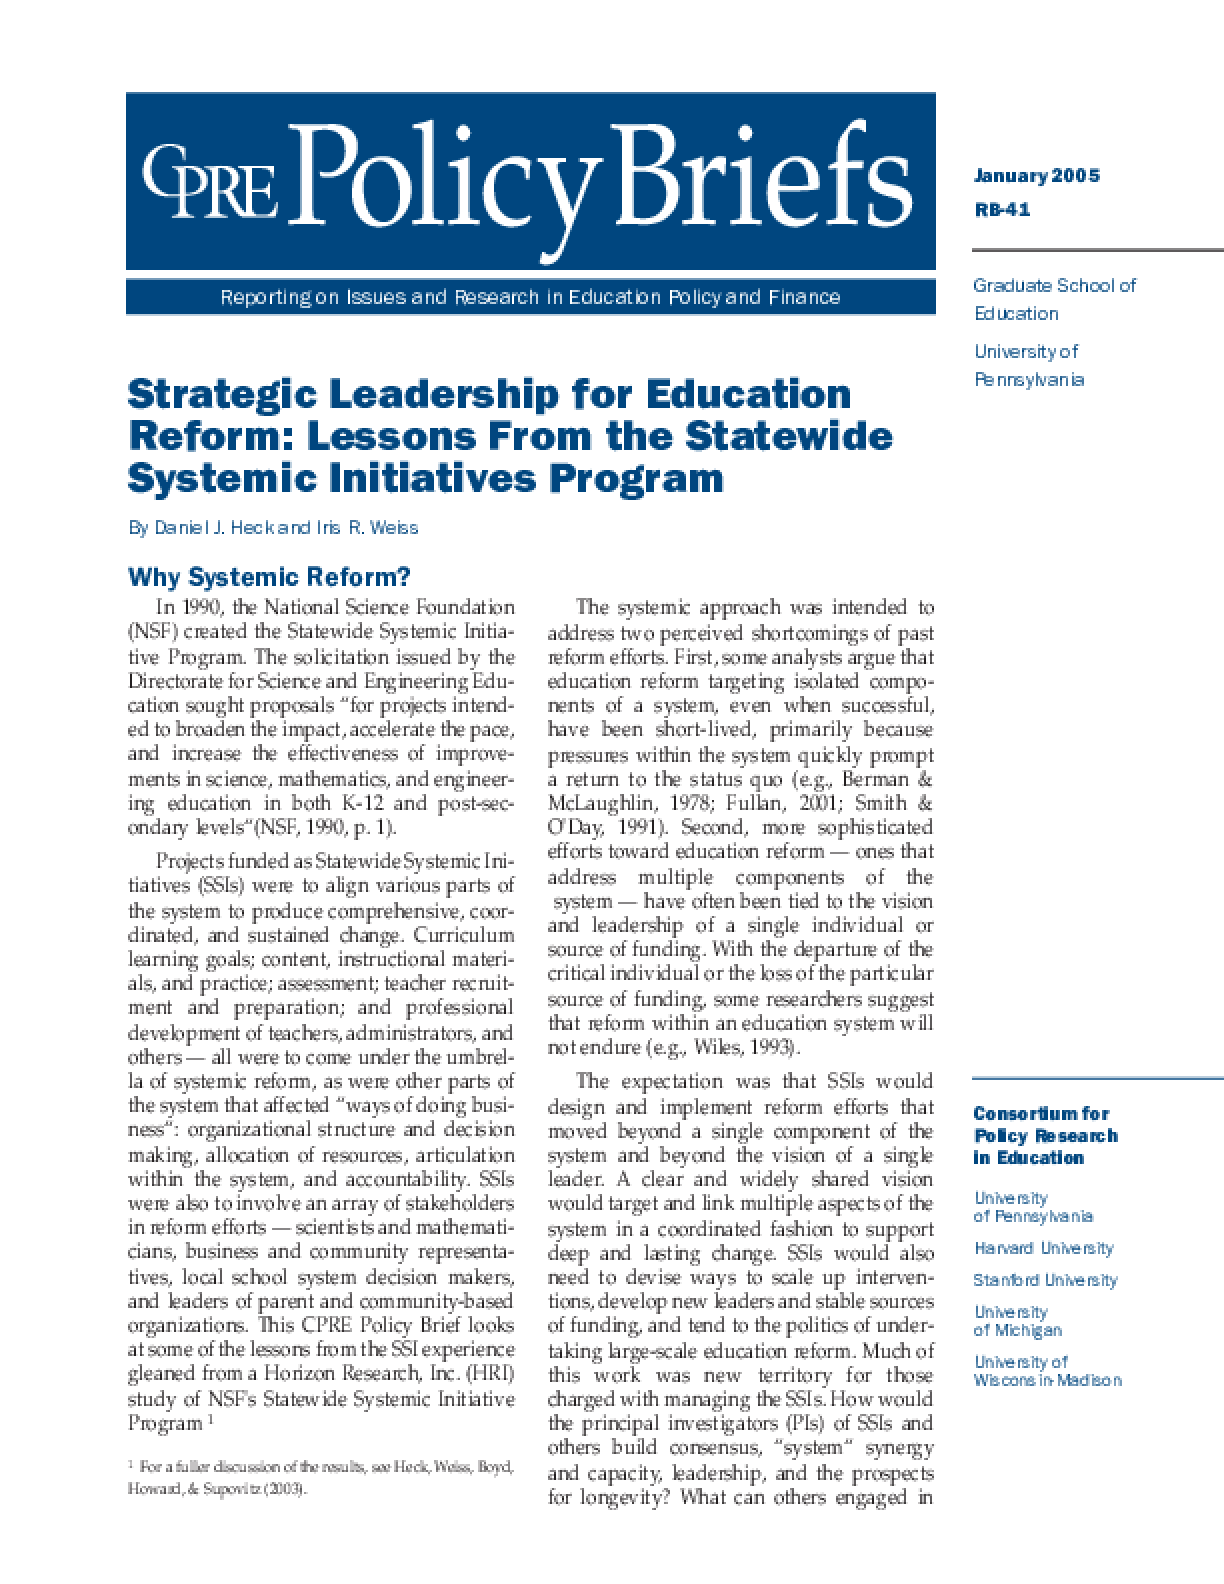 Strategic Leadership for Education Reform: Lessons From the Statewide Systemic Initiatives Program